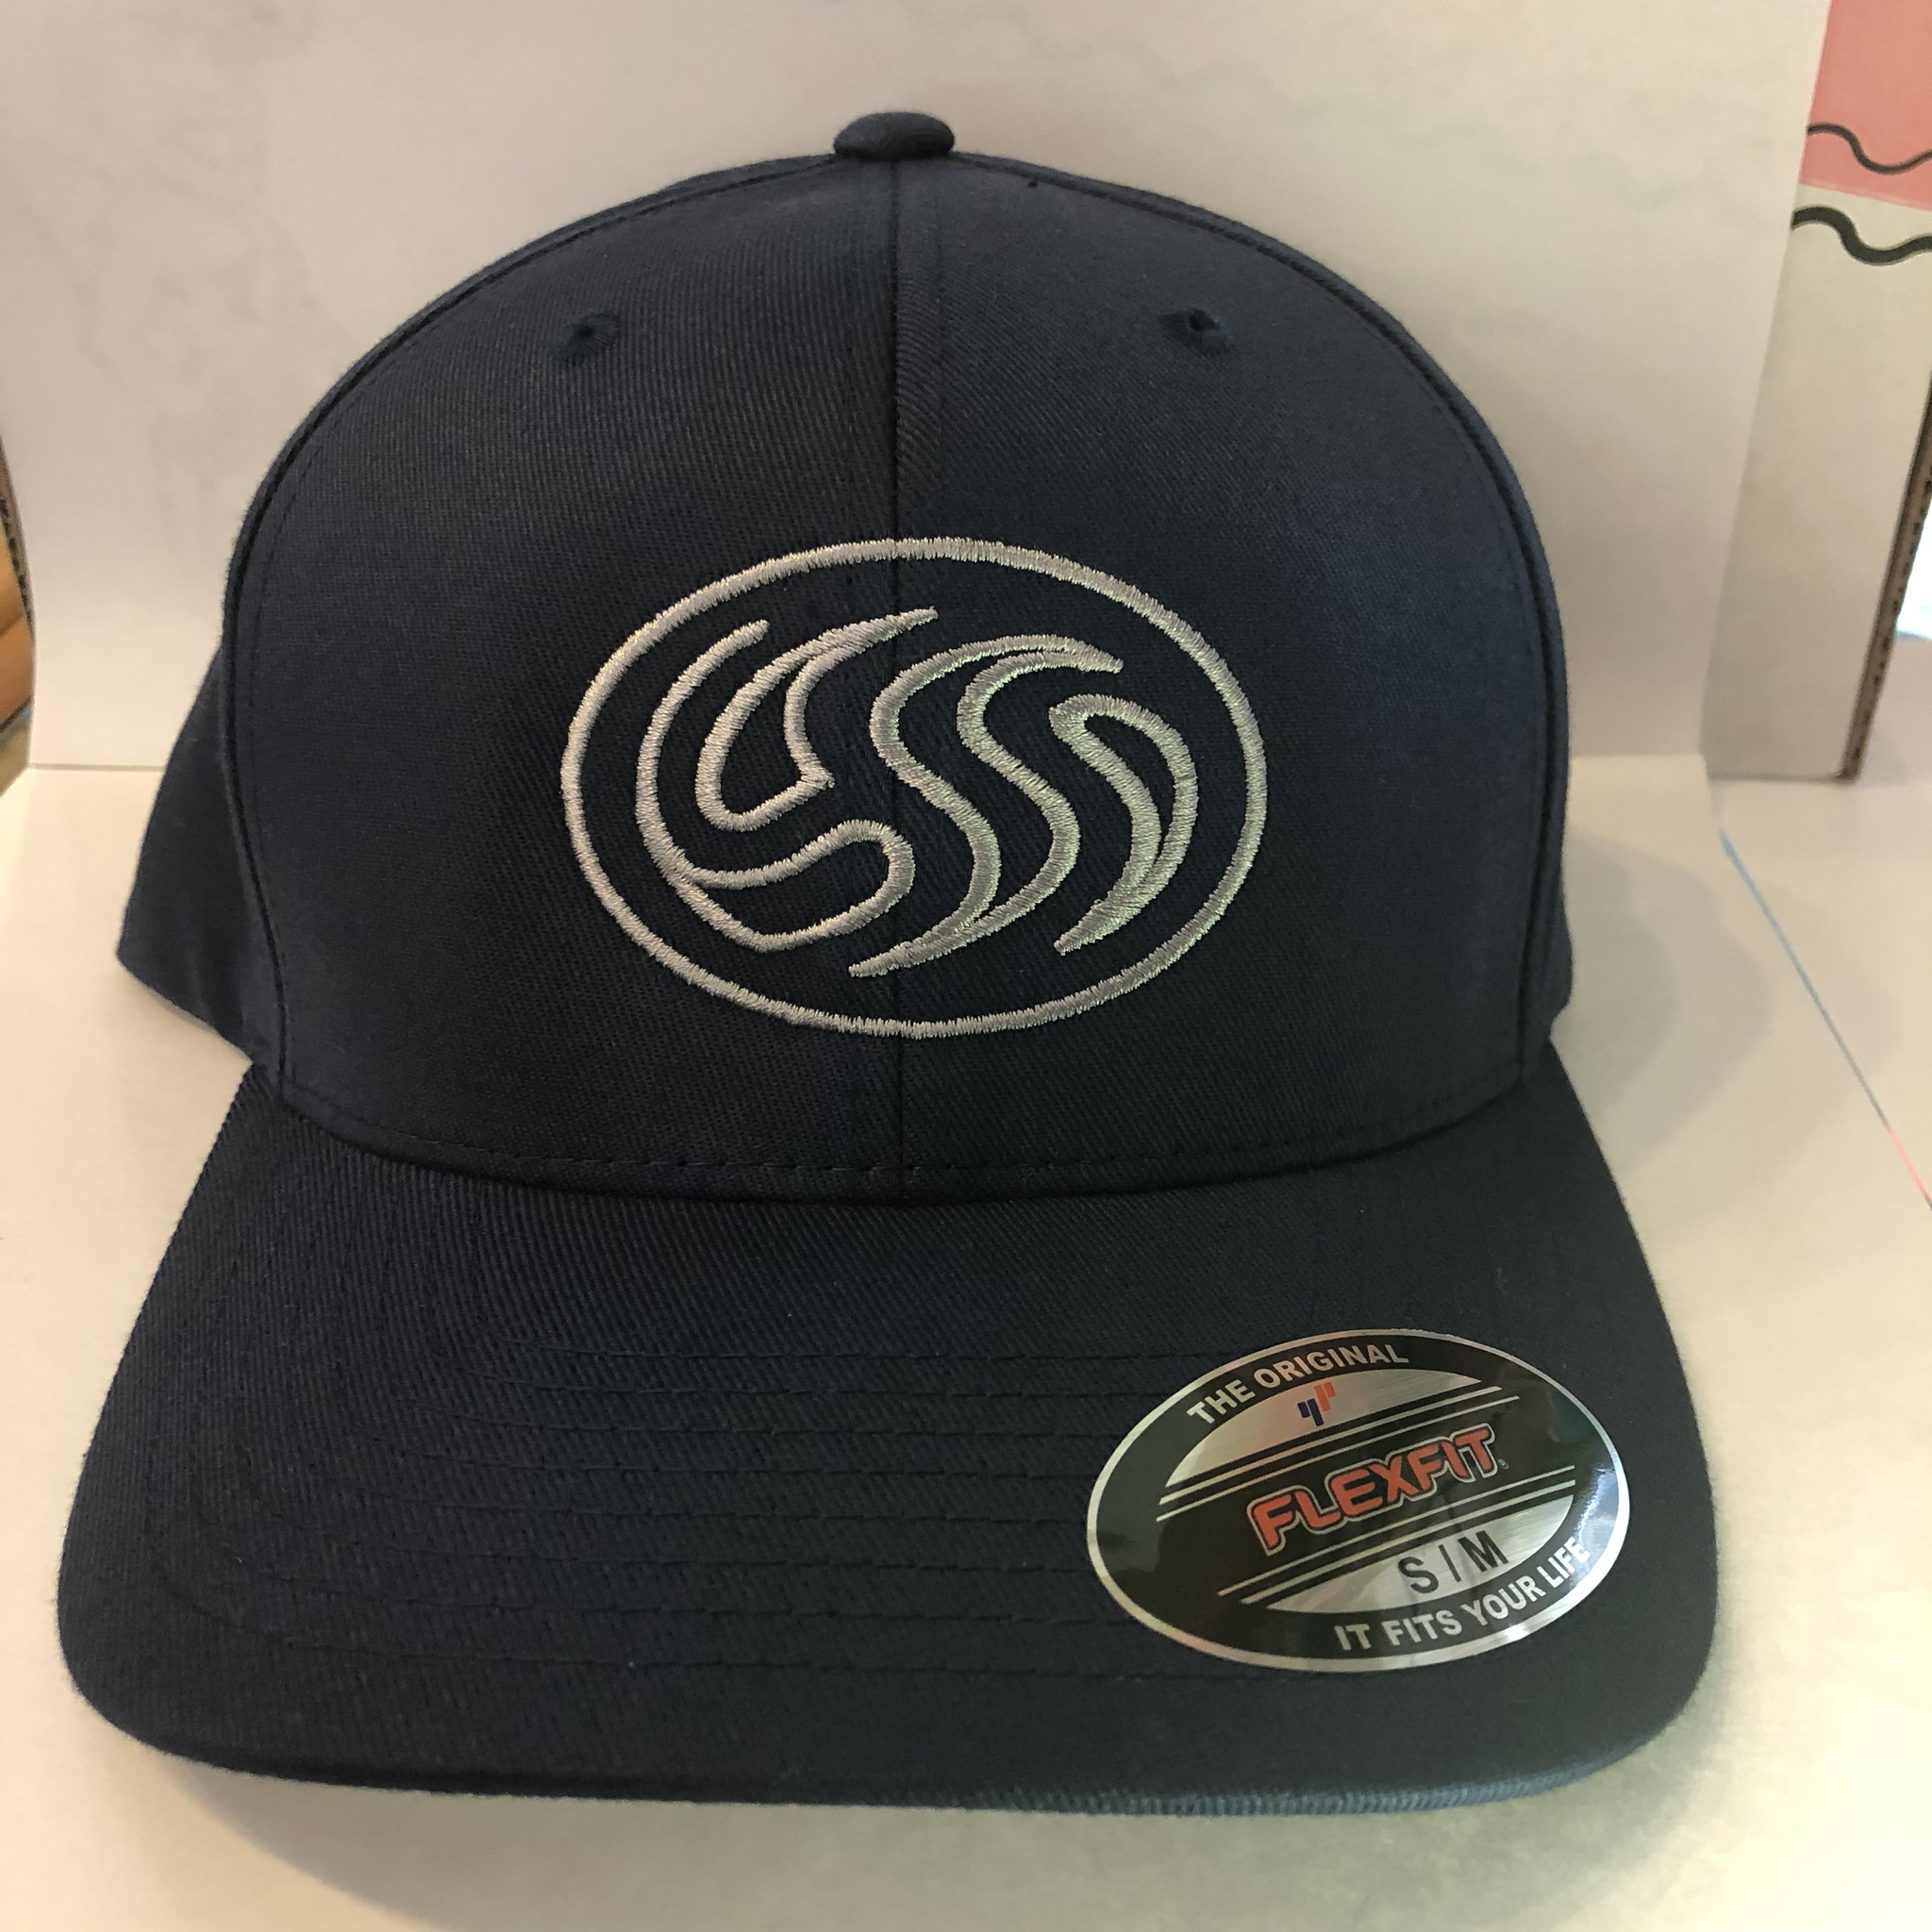 CSS Squash Flex Fit Hat (Navy) - S/M